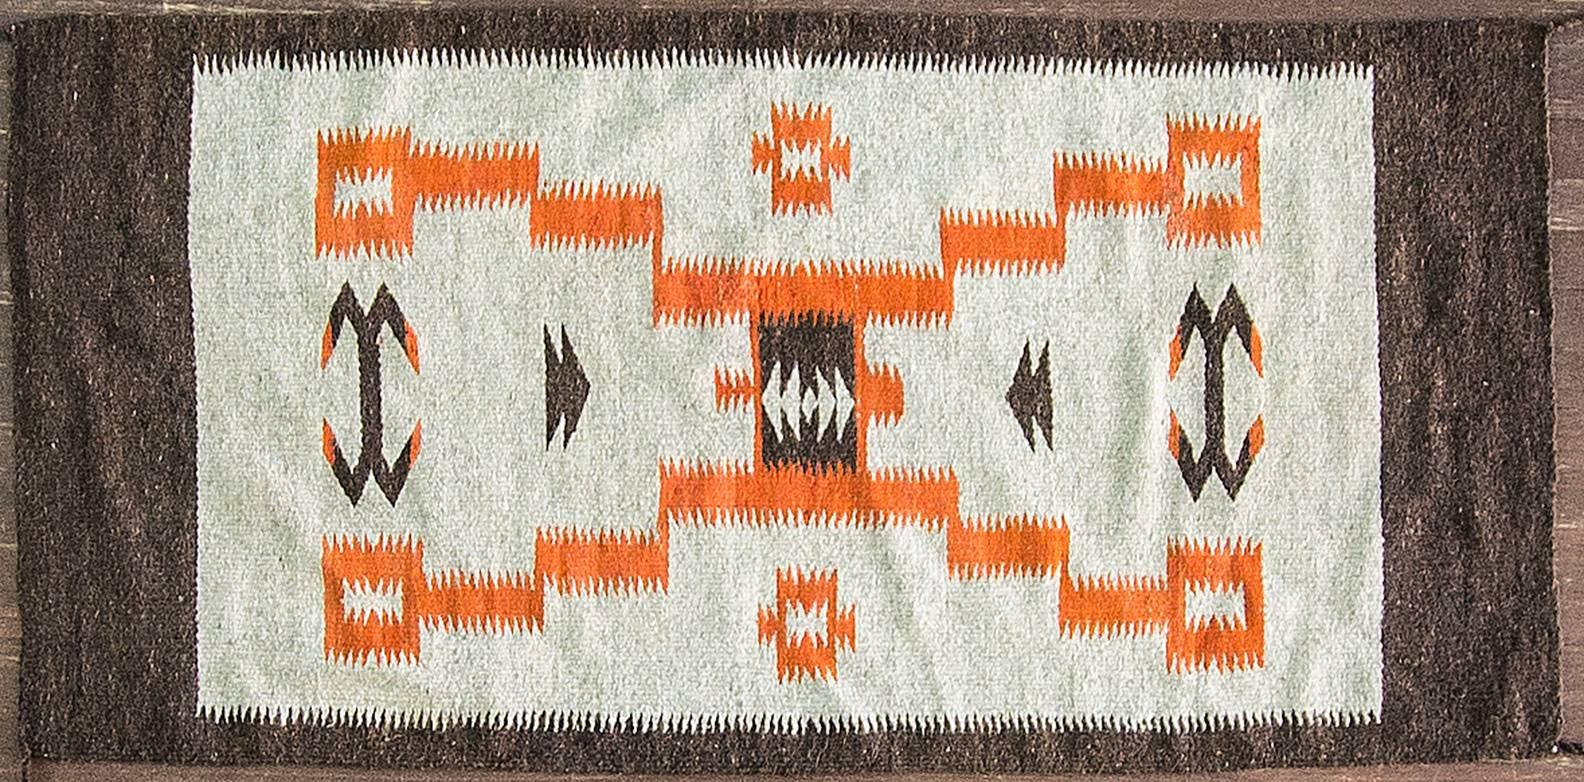 Navajo rug patterns Southwestern Design Storm Pattern Navajo Rug C1930 In Excellent Condition The Storm Pattern Is Pinterest Storm Pattern Navajo Rug Circa 1930 For Sale At 1stdibs